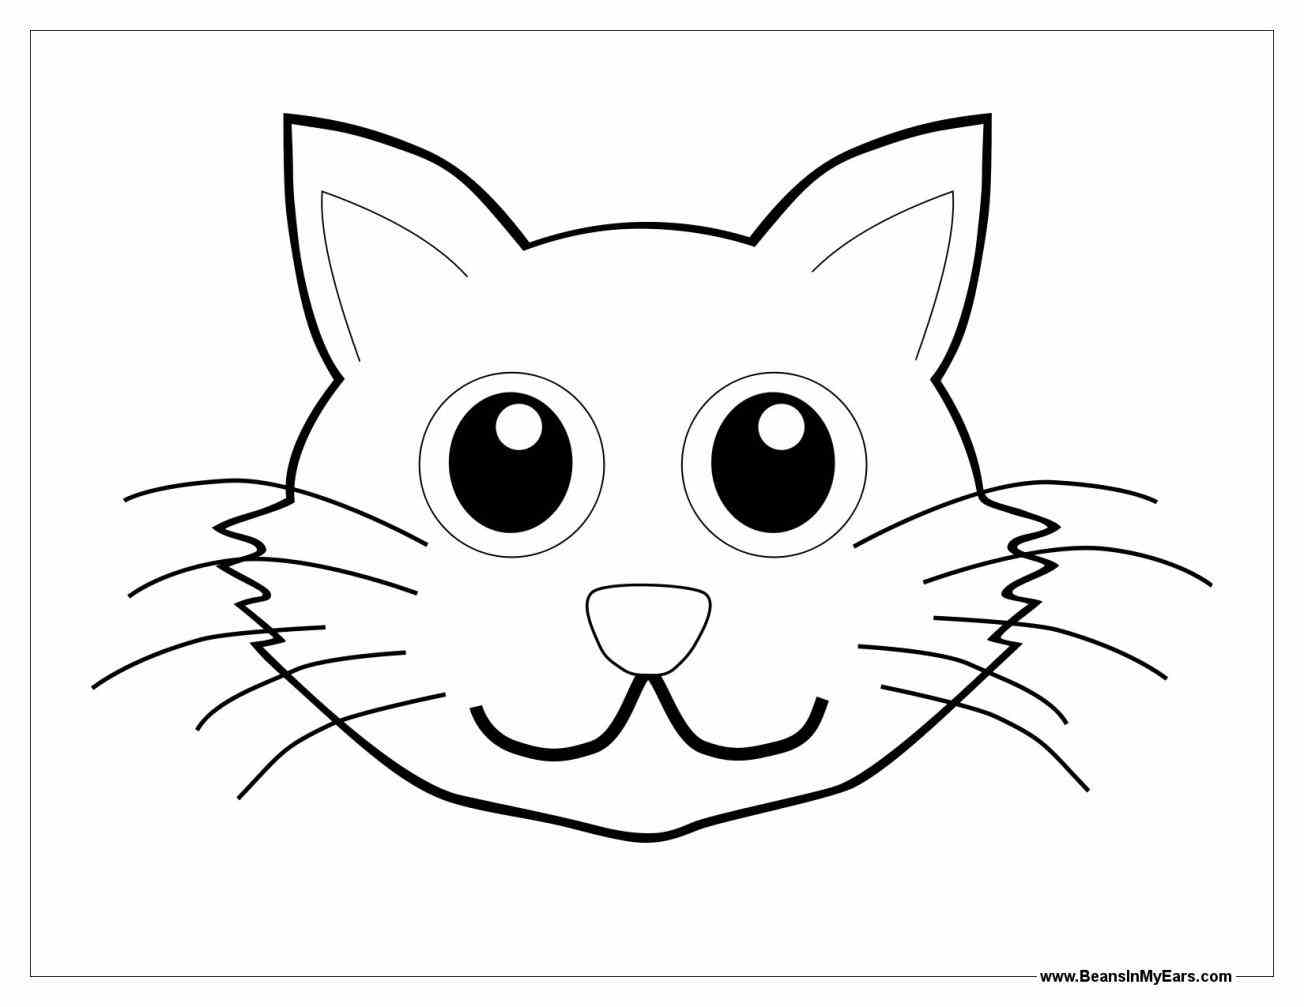 1304x1007 Cat Mask Drawing Cat Mask Eyes Drawings